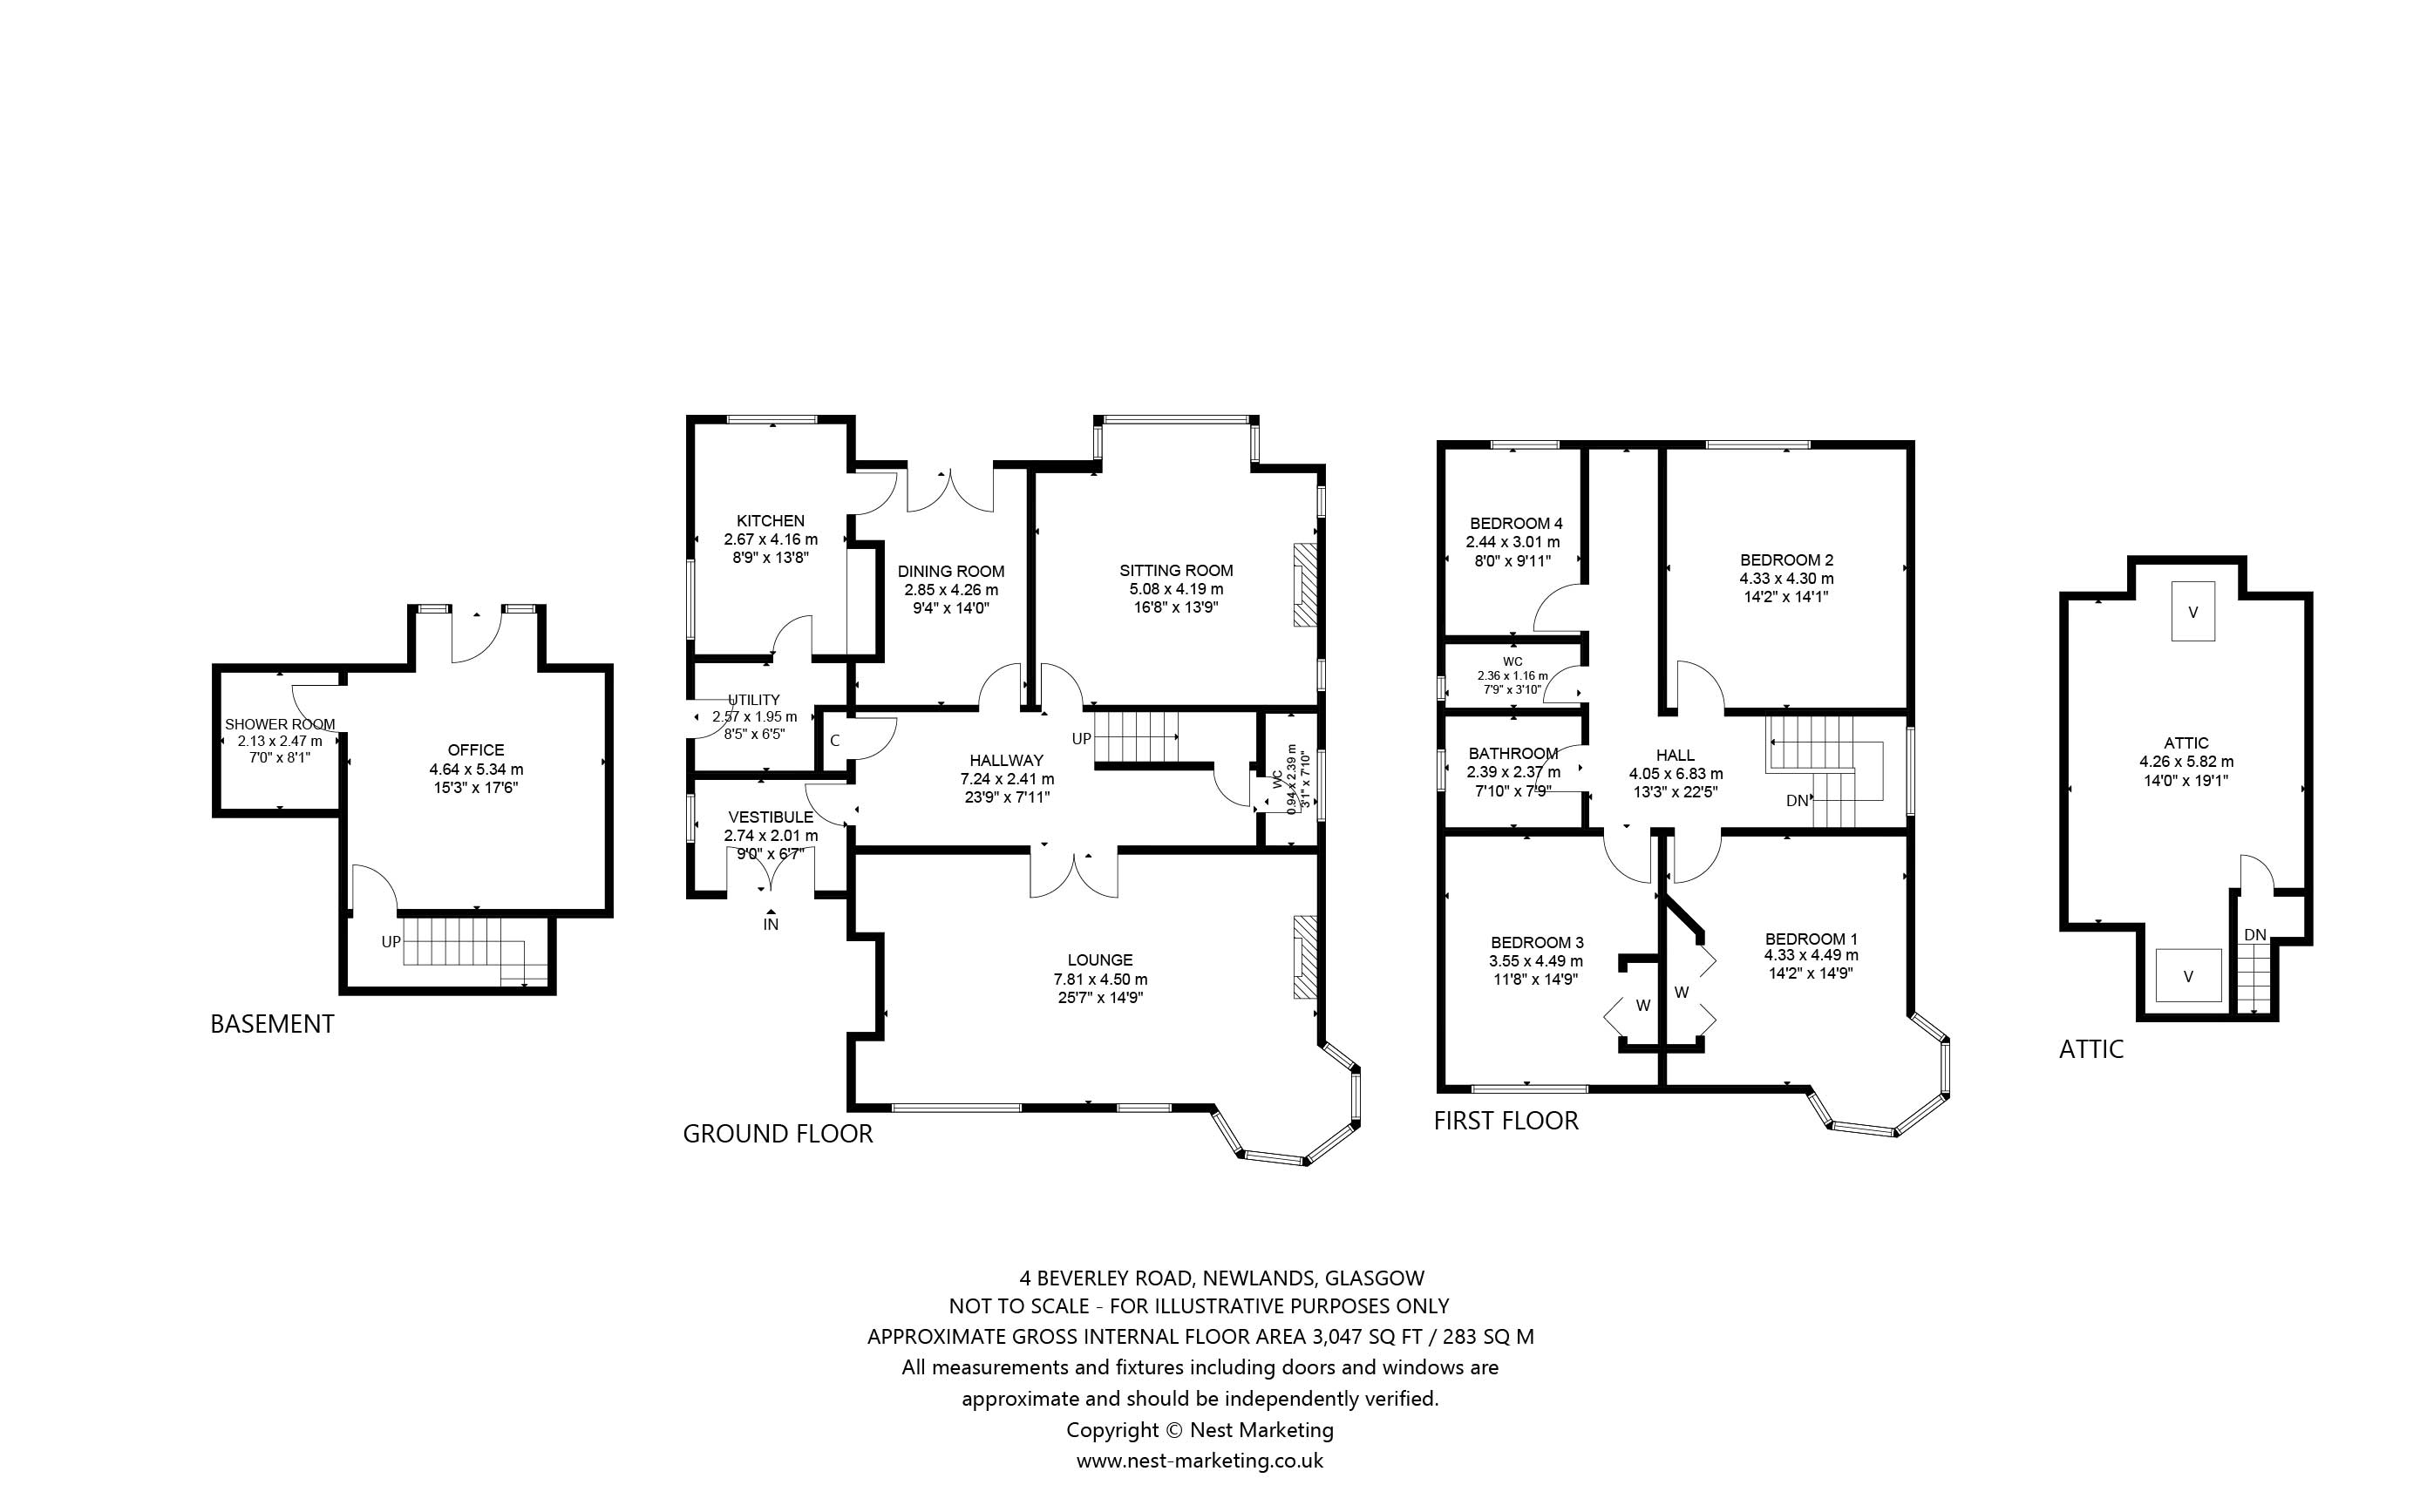 Floorplans for Beverley Road, Newlands, Glasgow, G43